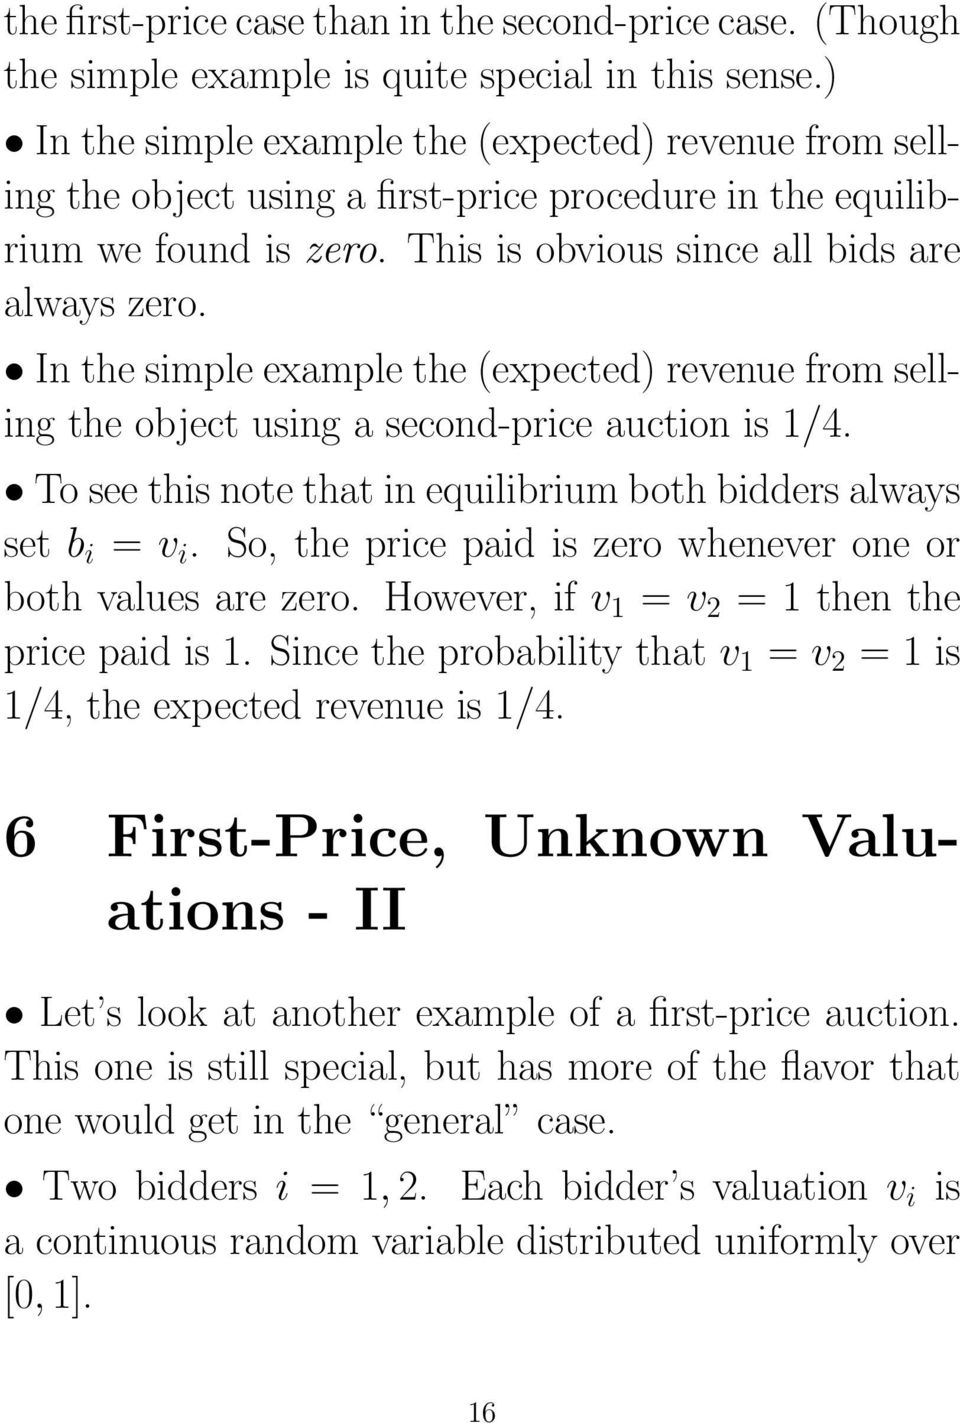 In the simple example the (expected) revenue from selling the object using a second-price auction is 1/4. To see this note that in equilibrium both bidders always set b i = v i.